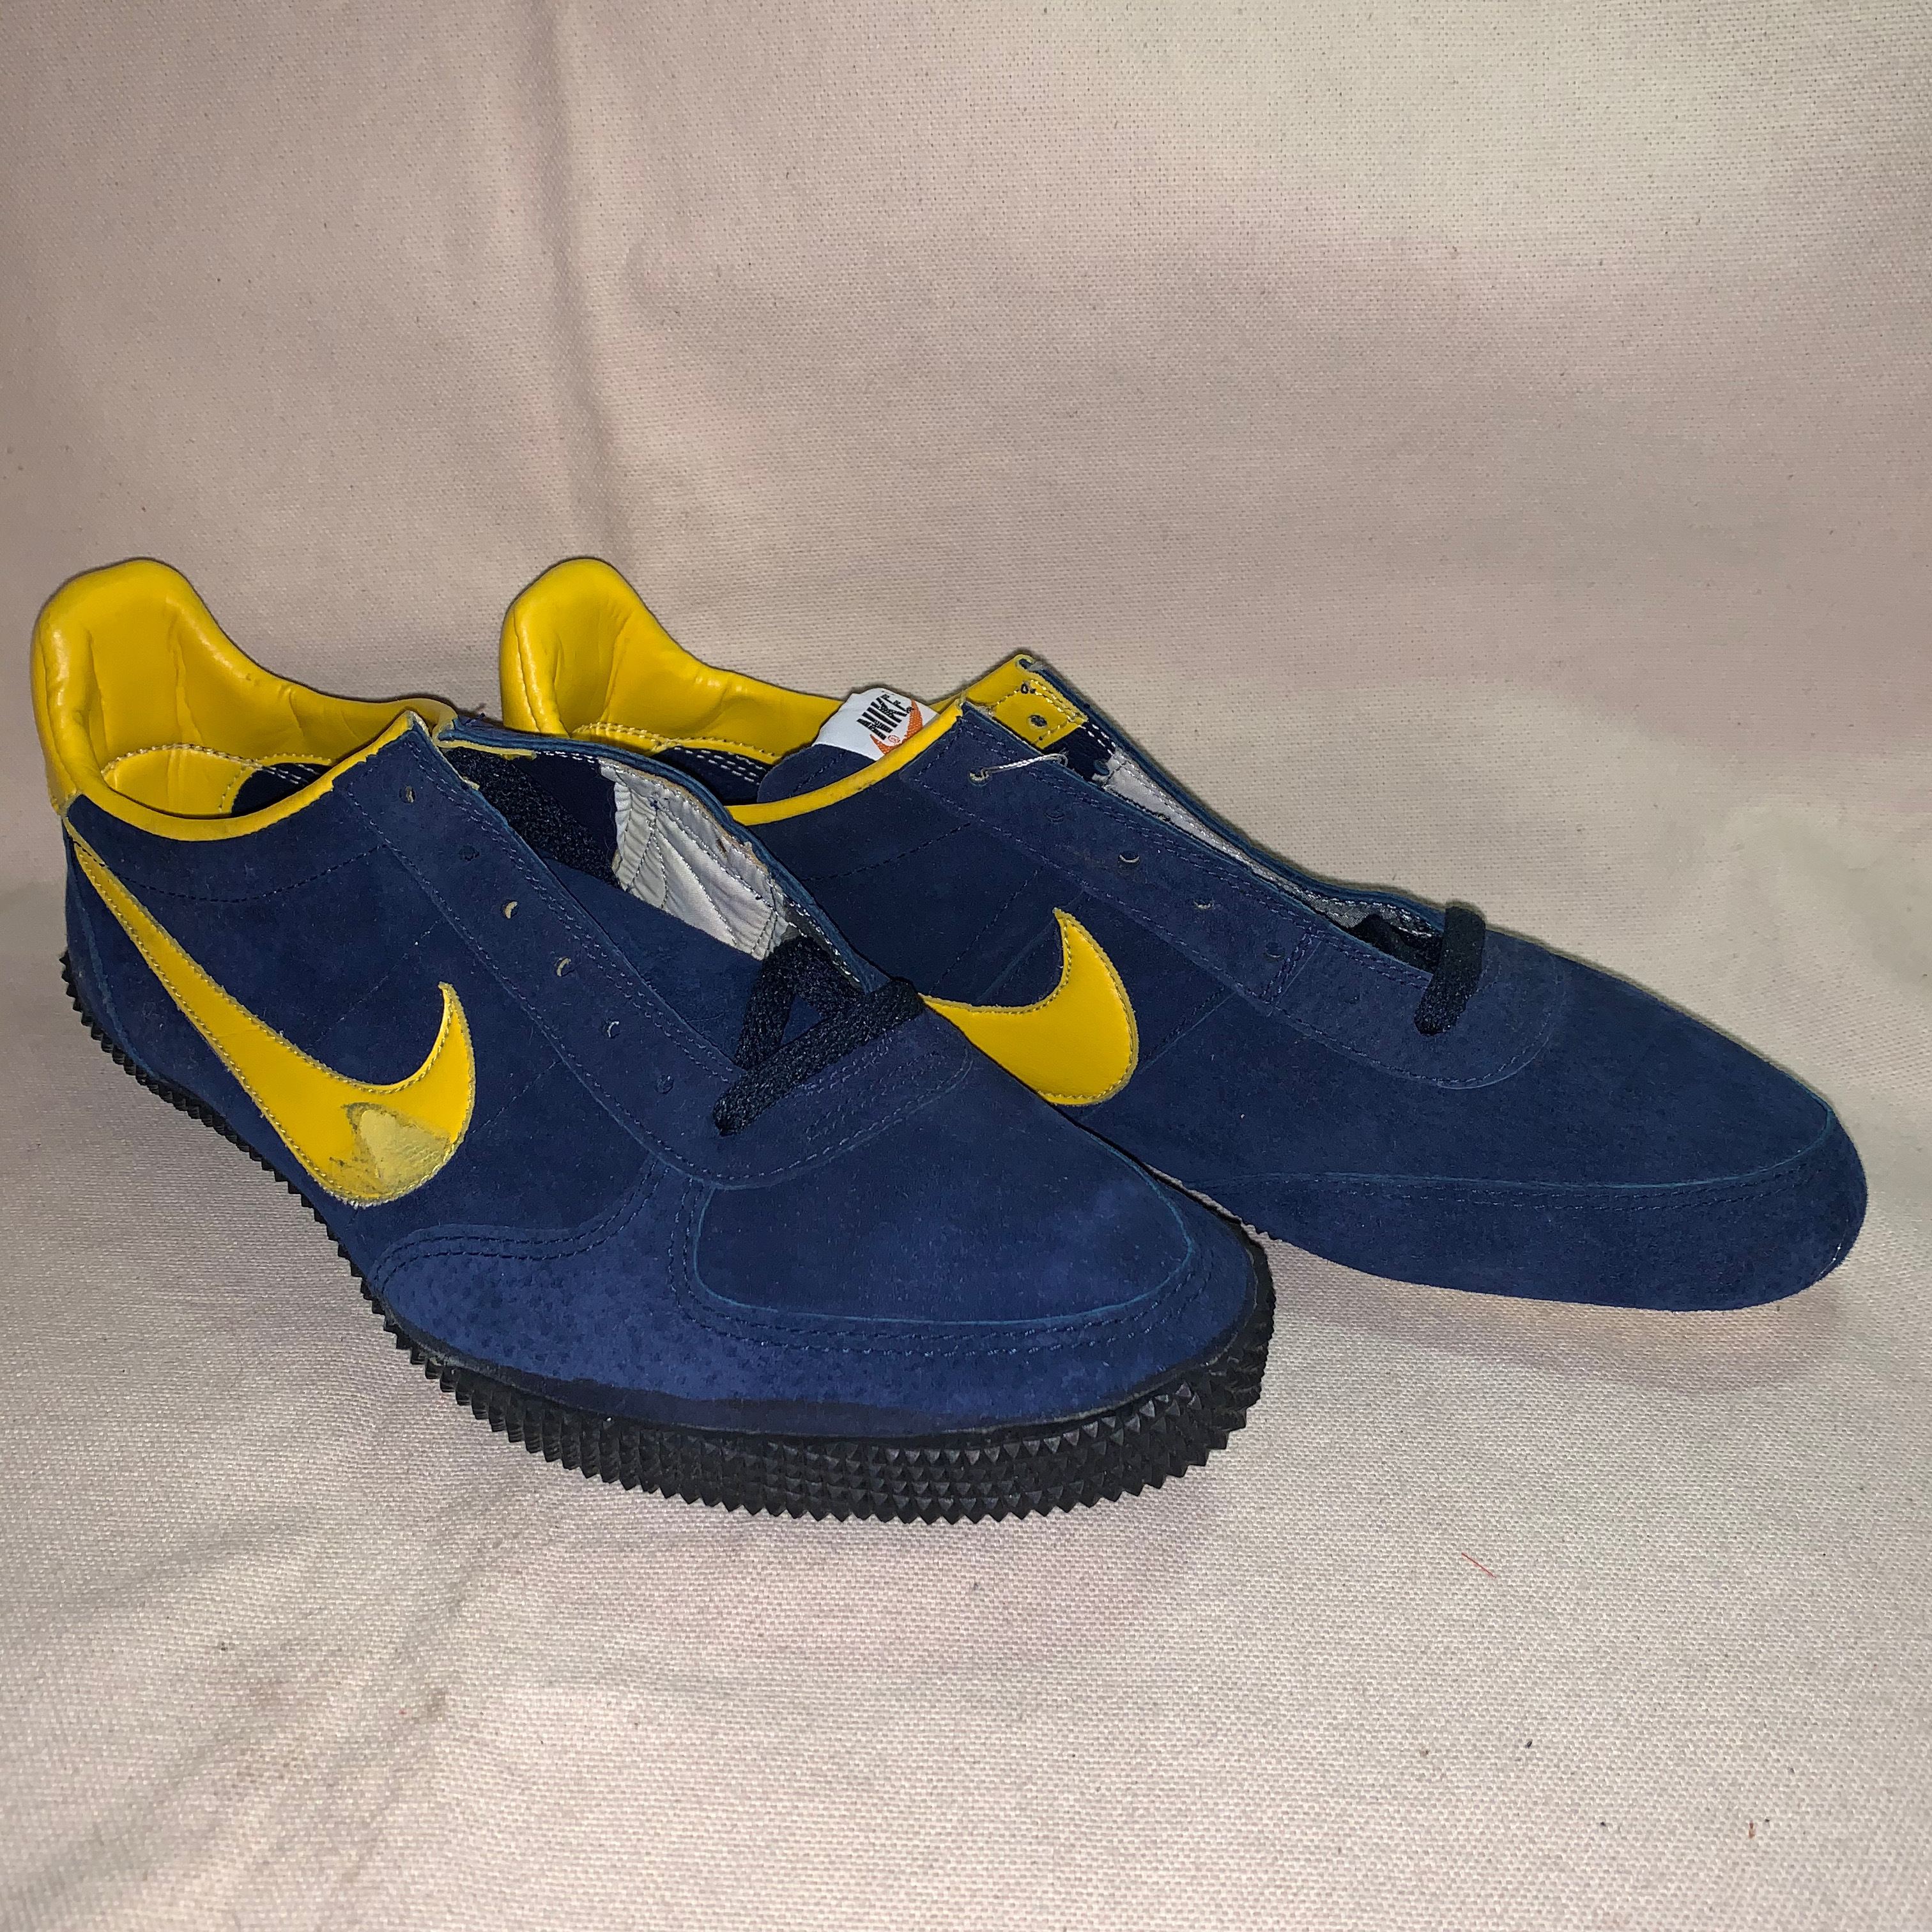 70's NIKE HIGH JUMP navy blue / marigold US9.5 競技用/スパイク Made in USA  Dead Stock